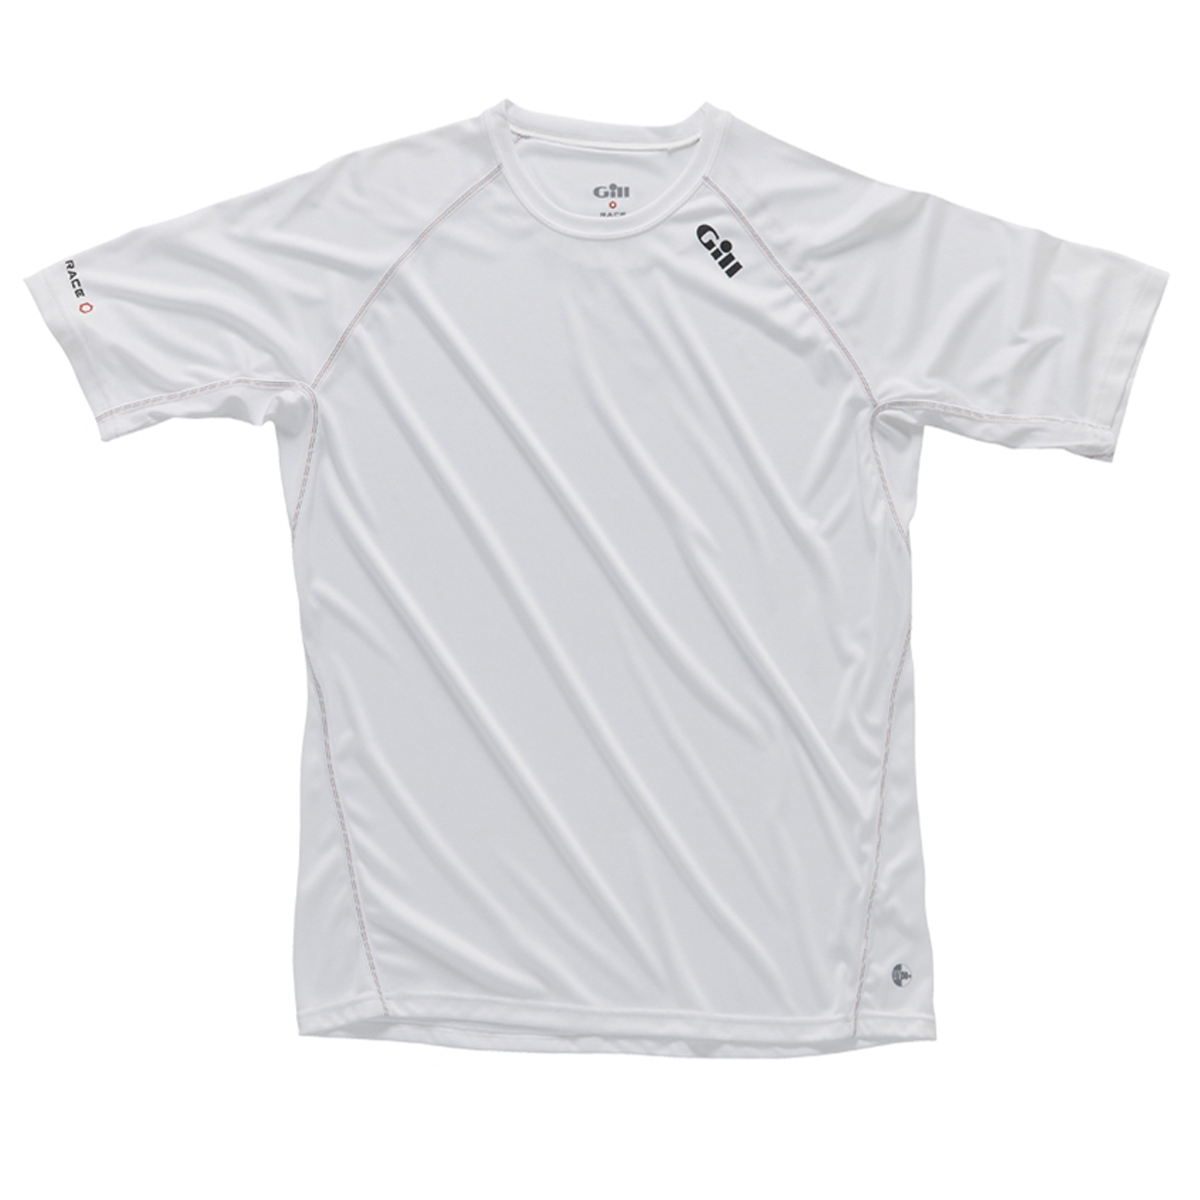 Gill Race Short Sleeve T-Shirt (RS06)